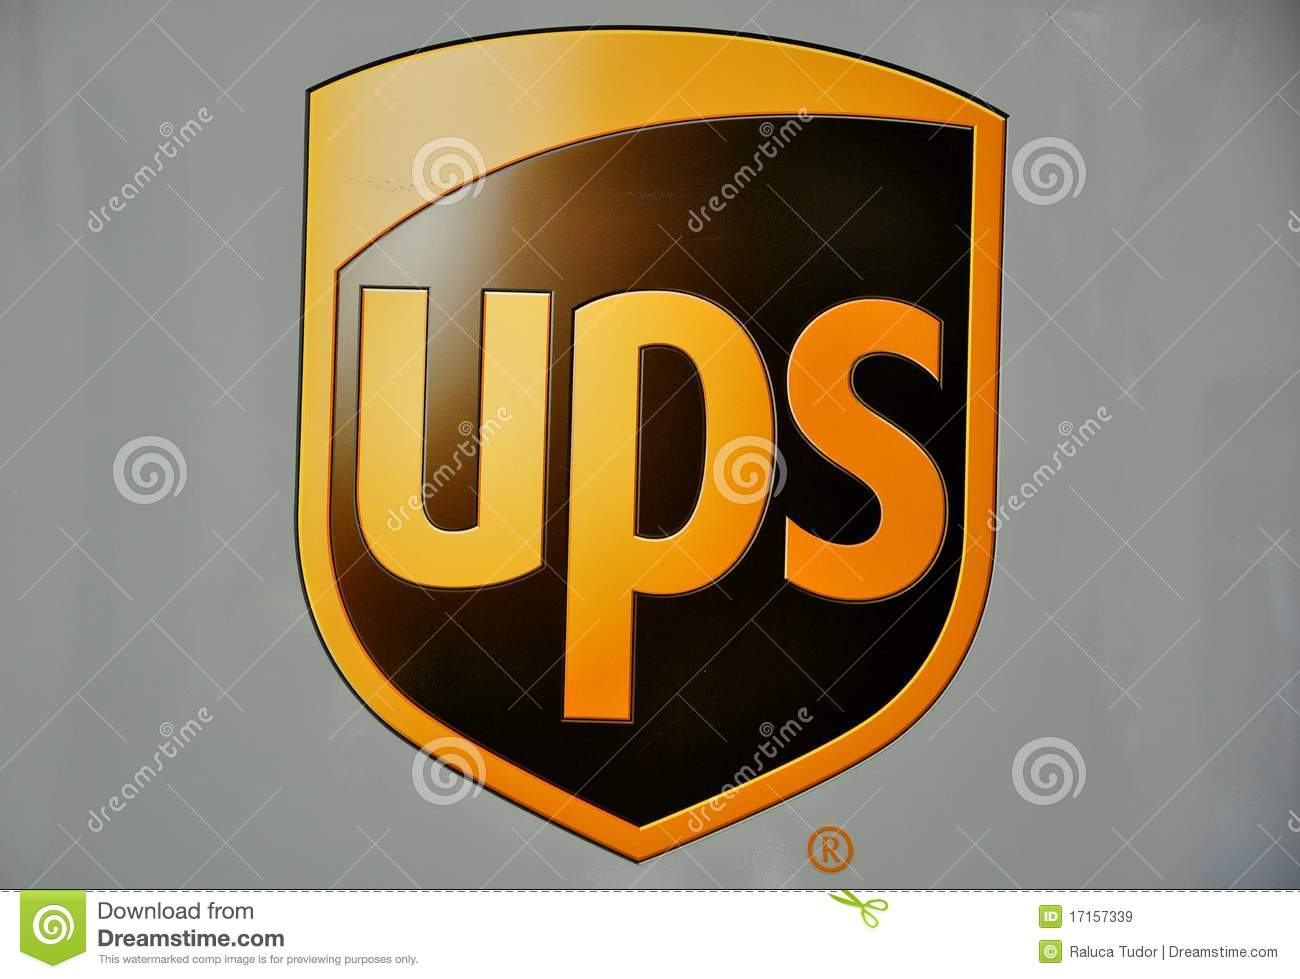 Ups delivery brand